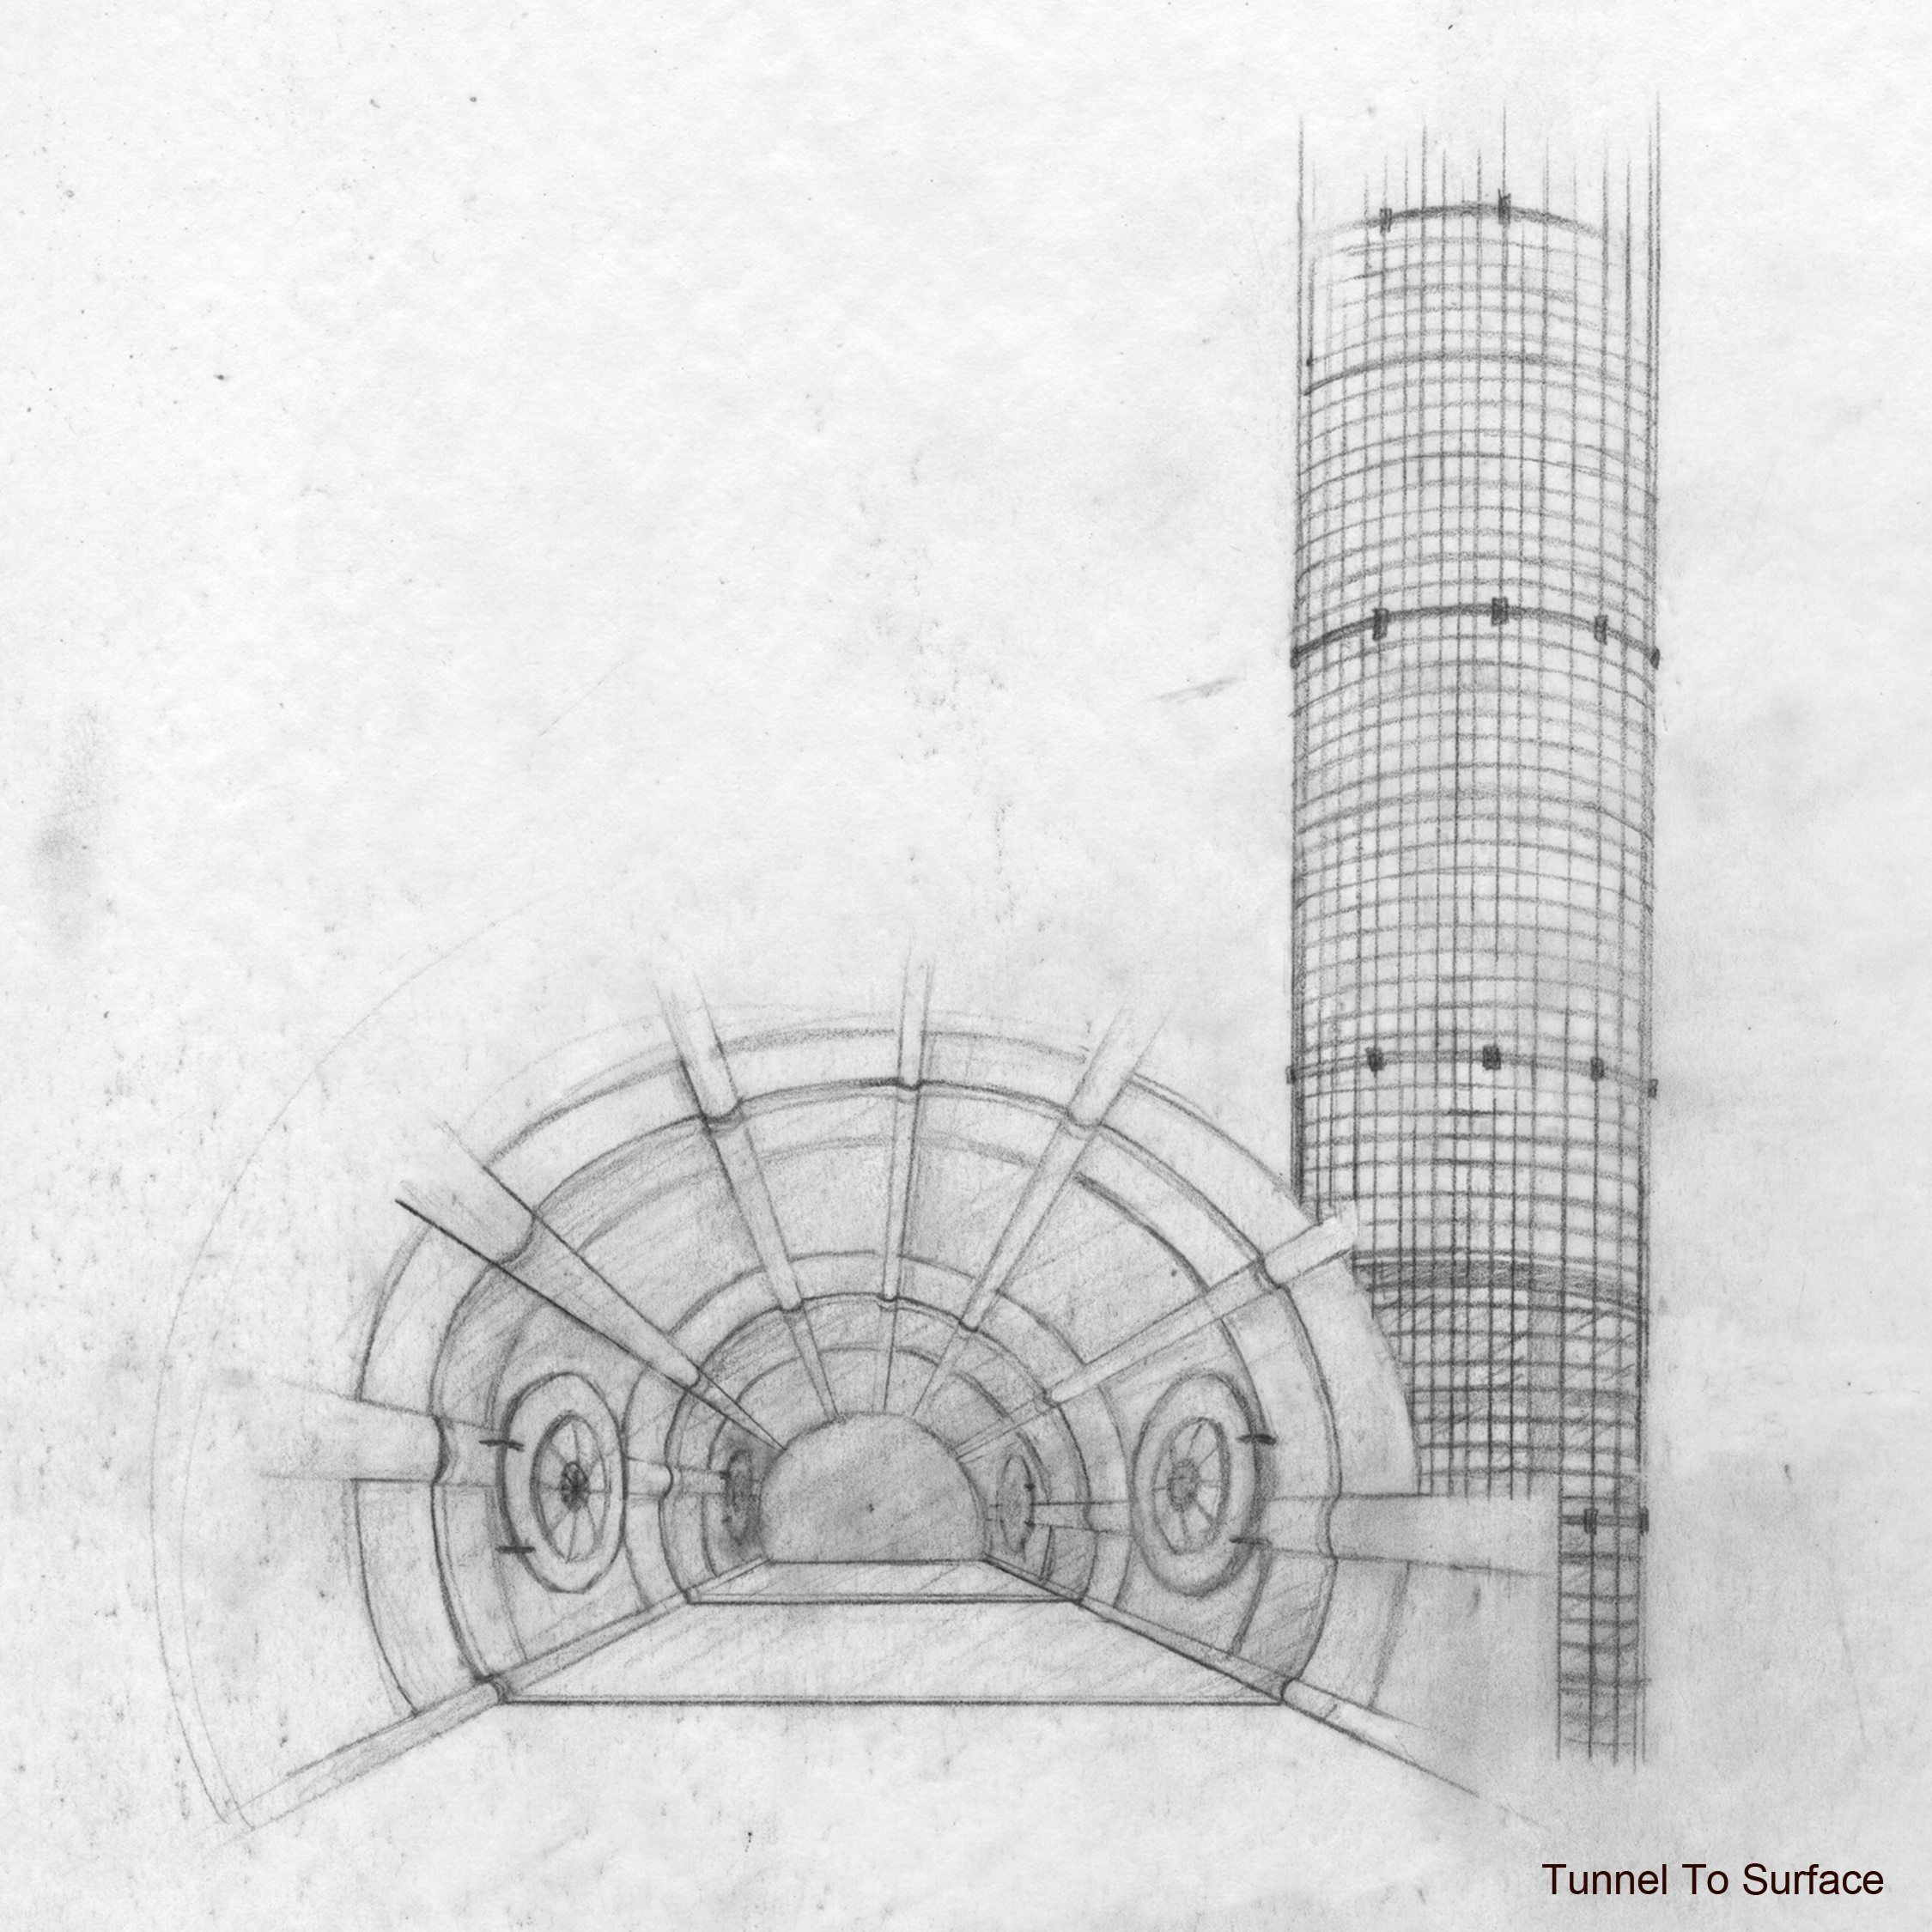 Tunnel Sketch.jpg